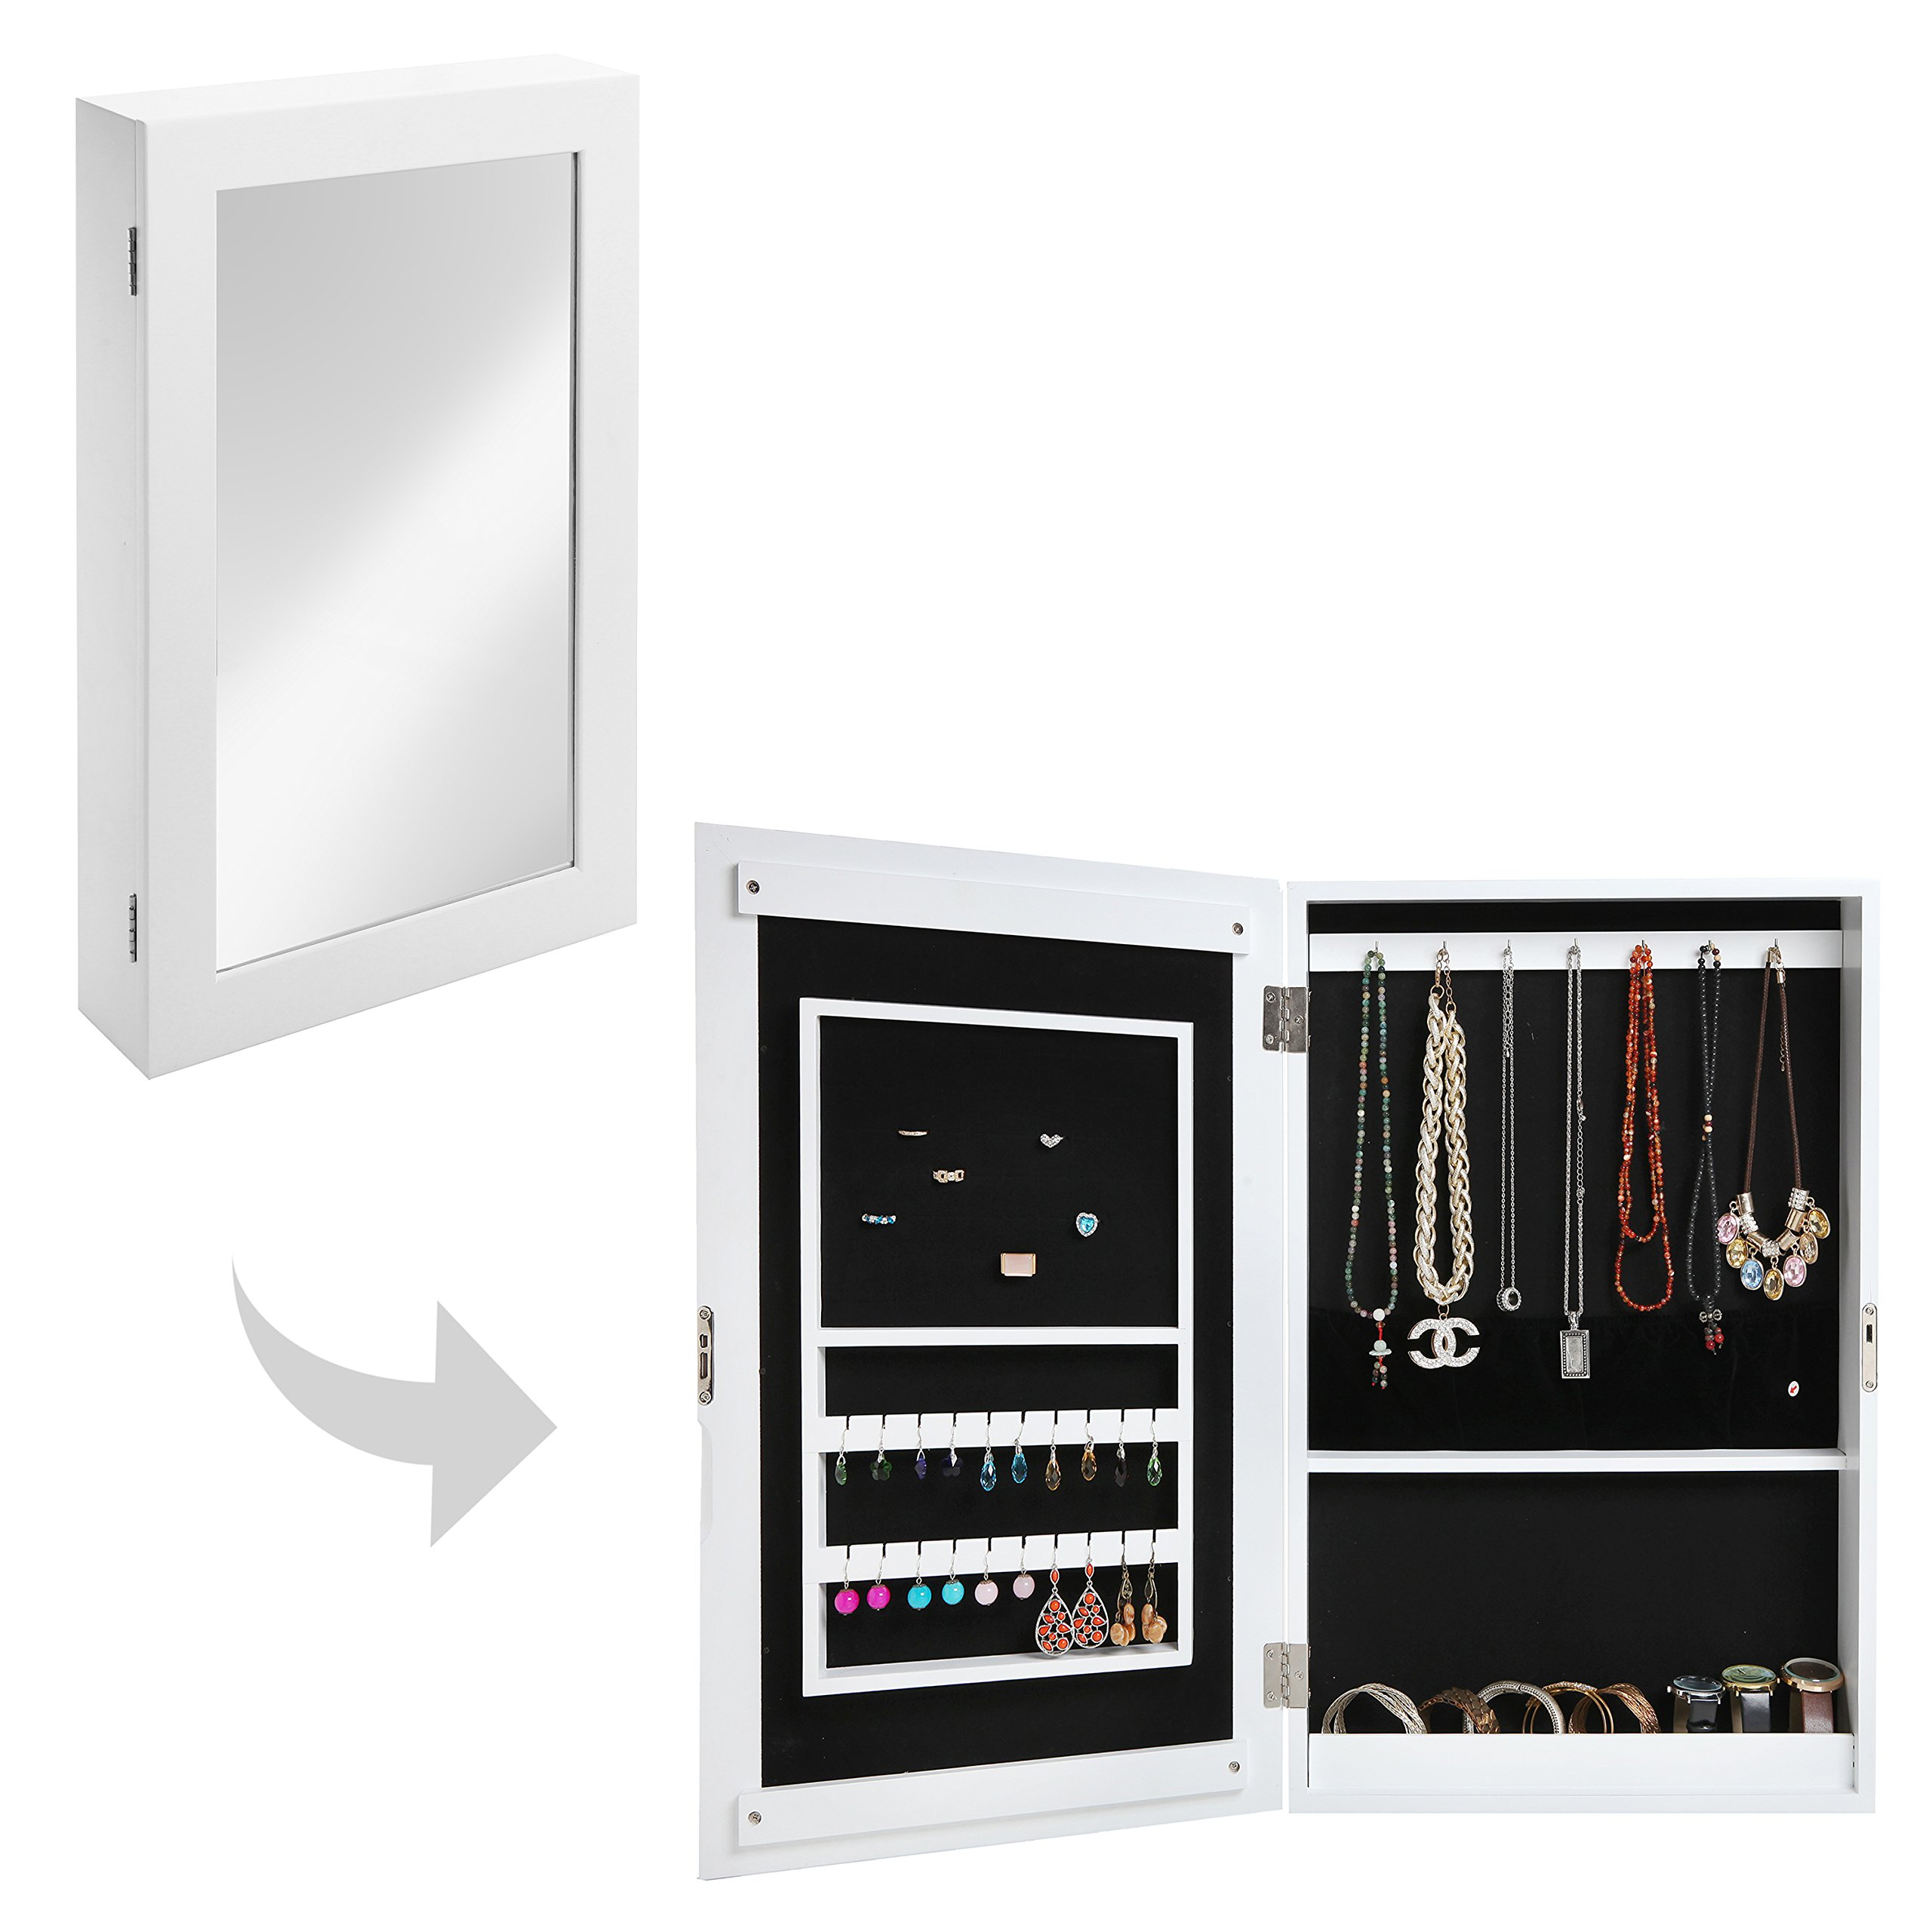 MyGift 24 inch Chic White Wood Wall Mounted Mirrored Multi-Storage Jewelry/Necklace Organizer Cabinet